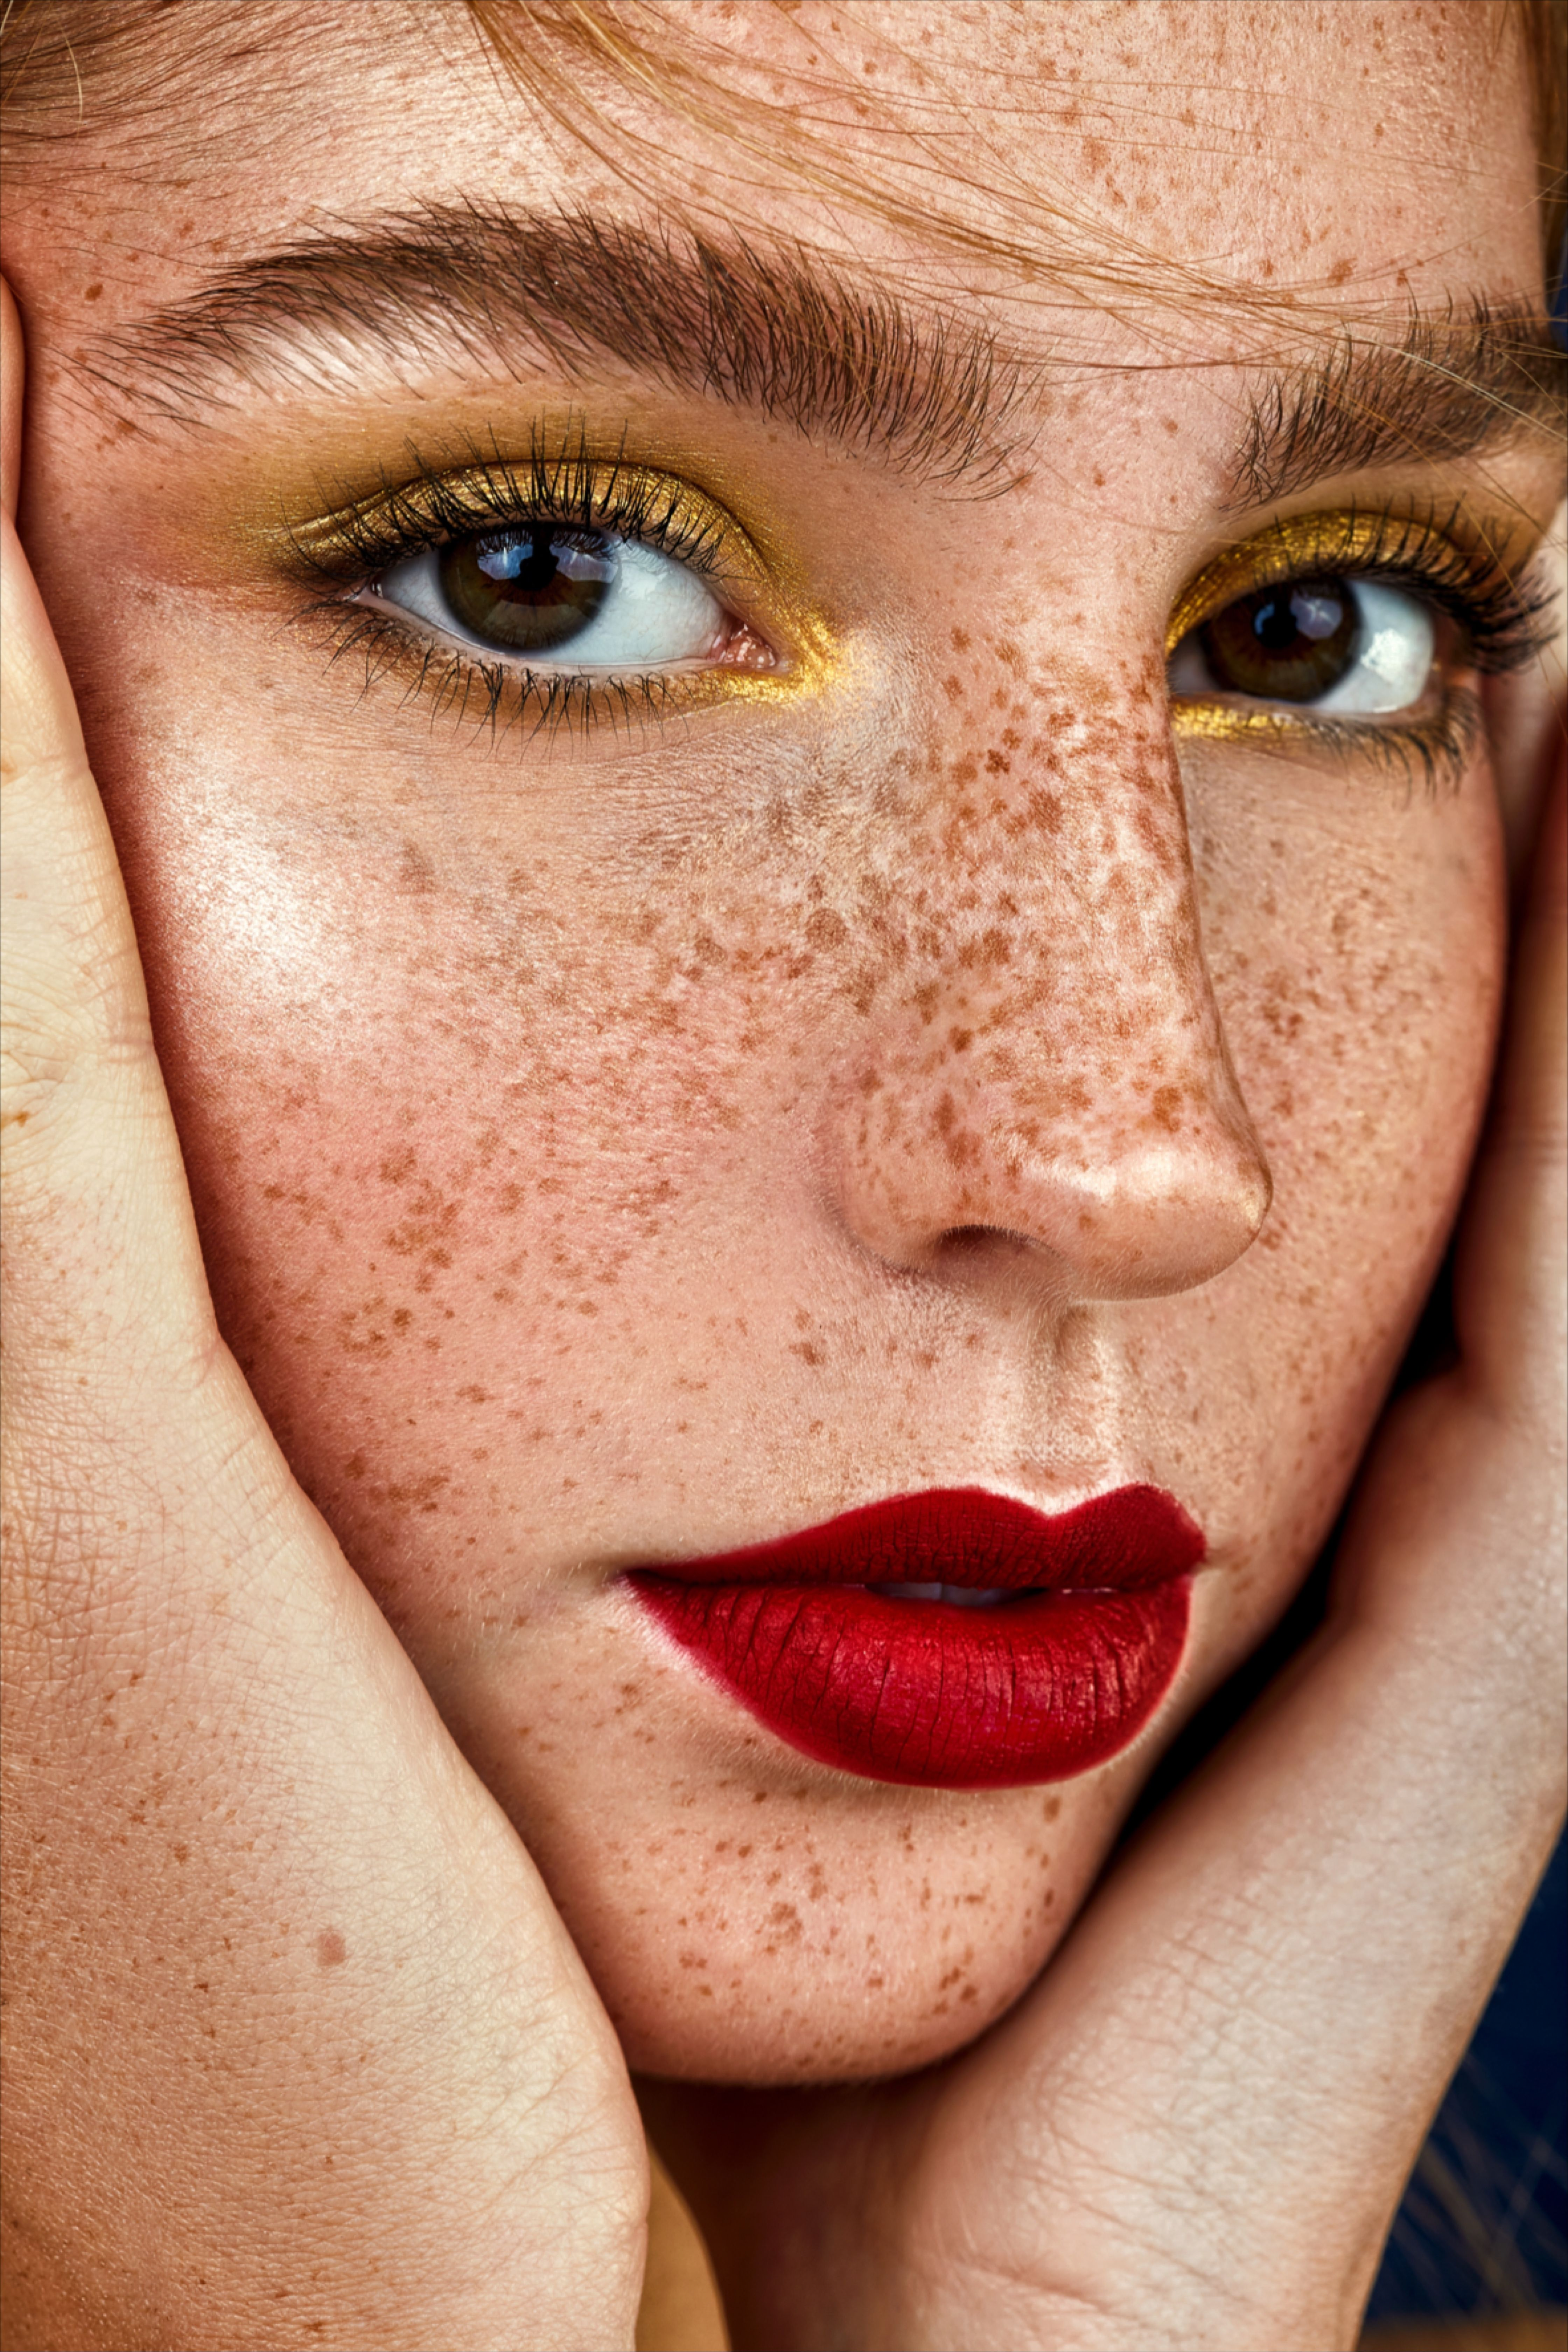 Christmas Eyebrows 2020 christmas make up inspiration in 2020 | Freckles makeup, Beauty